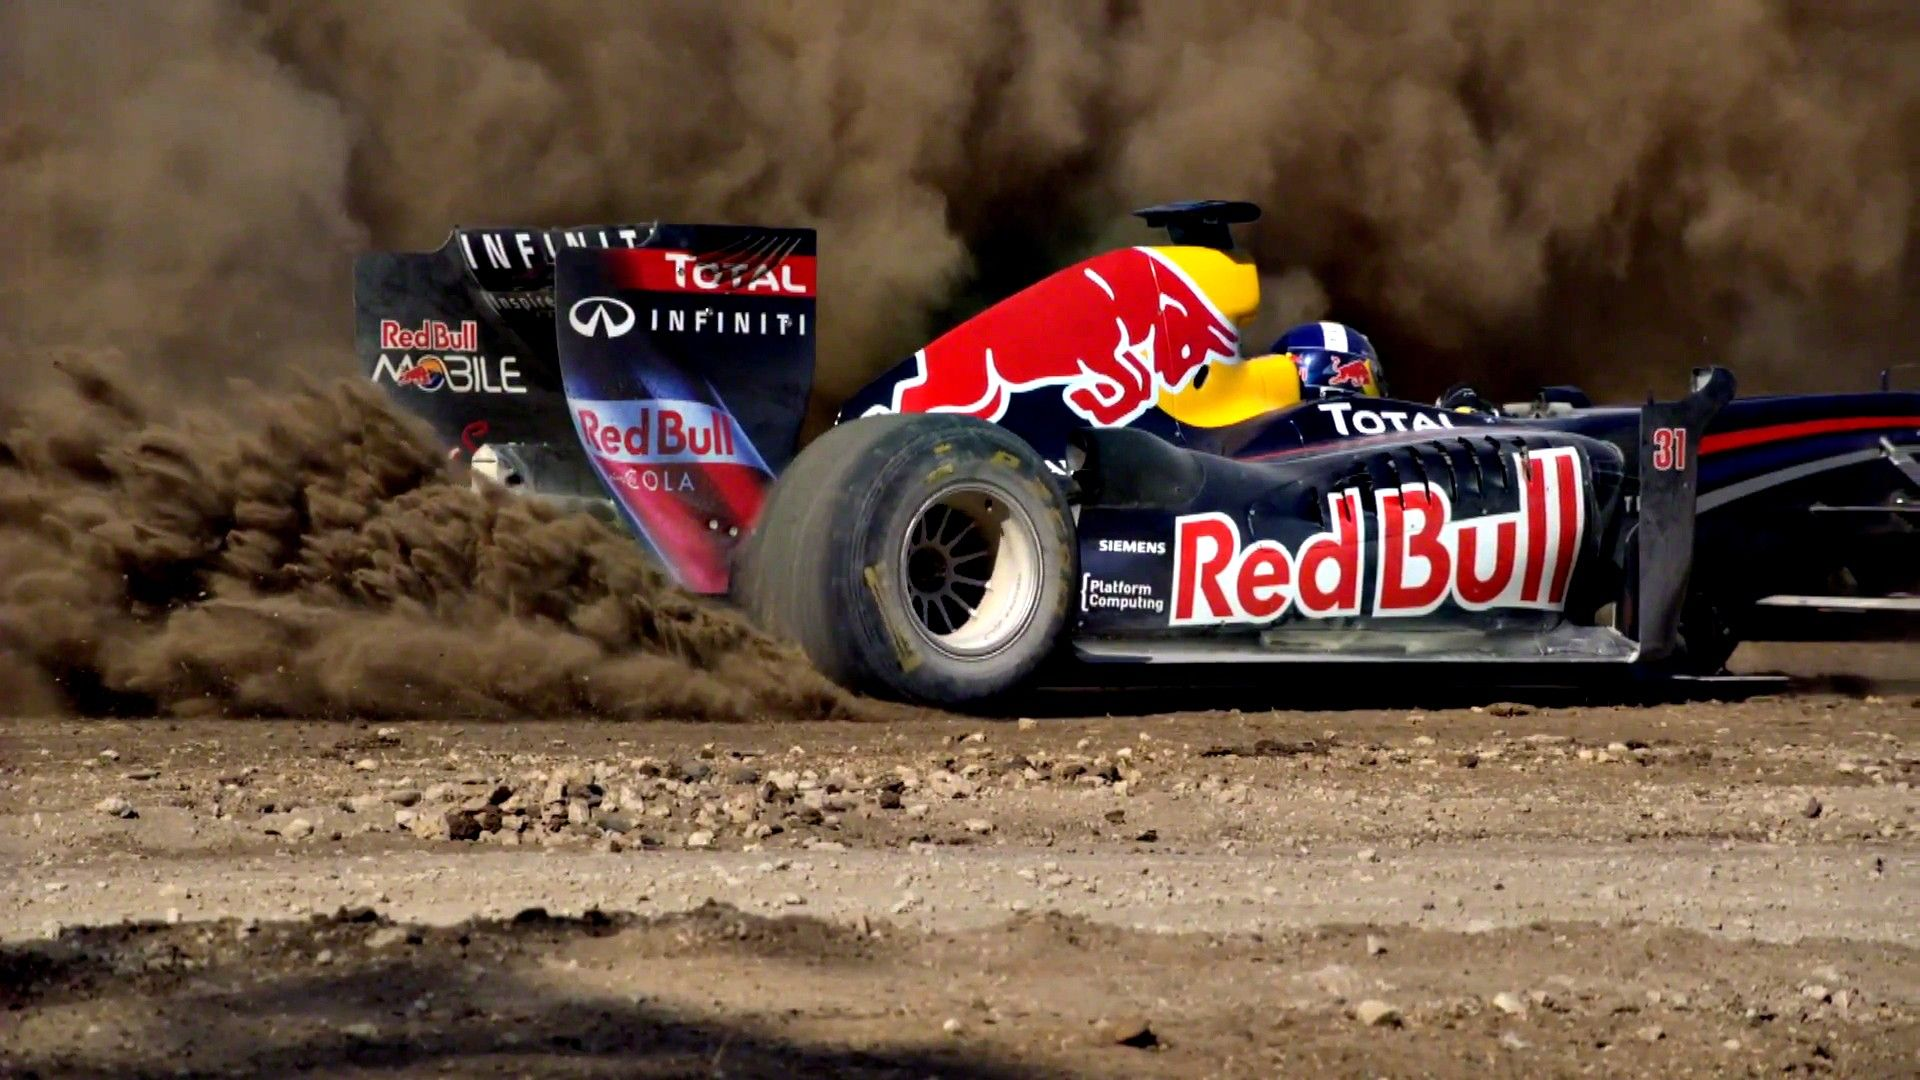 Formula One Red Bull Racing David Coulthard / 1920x1080